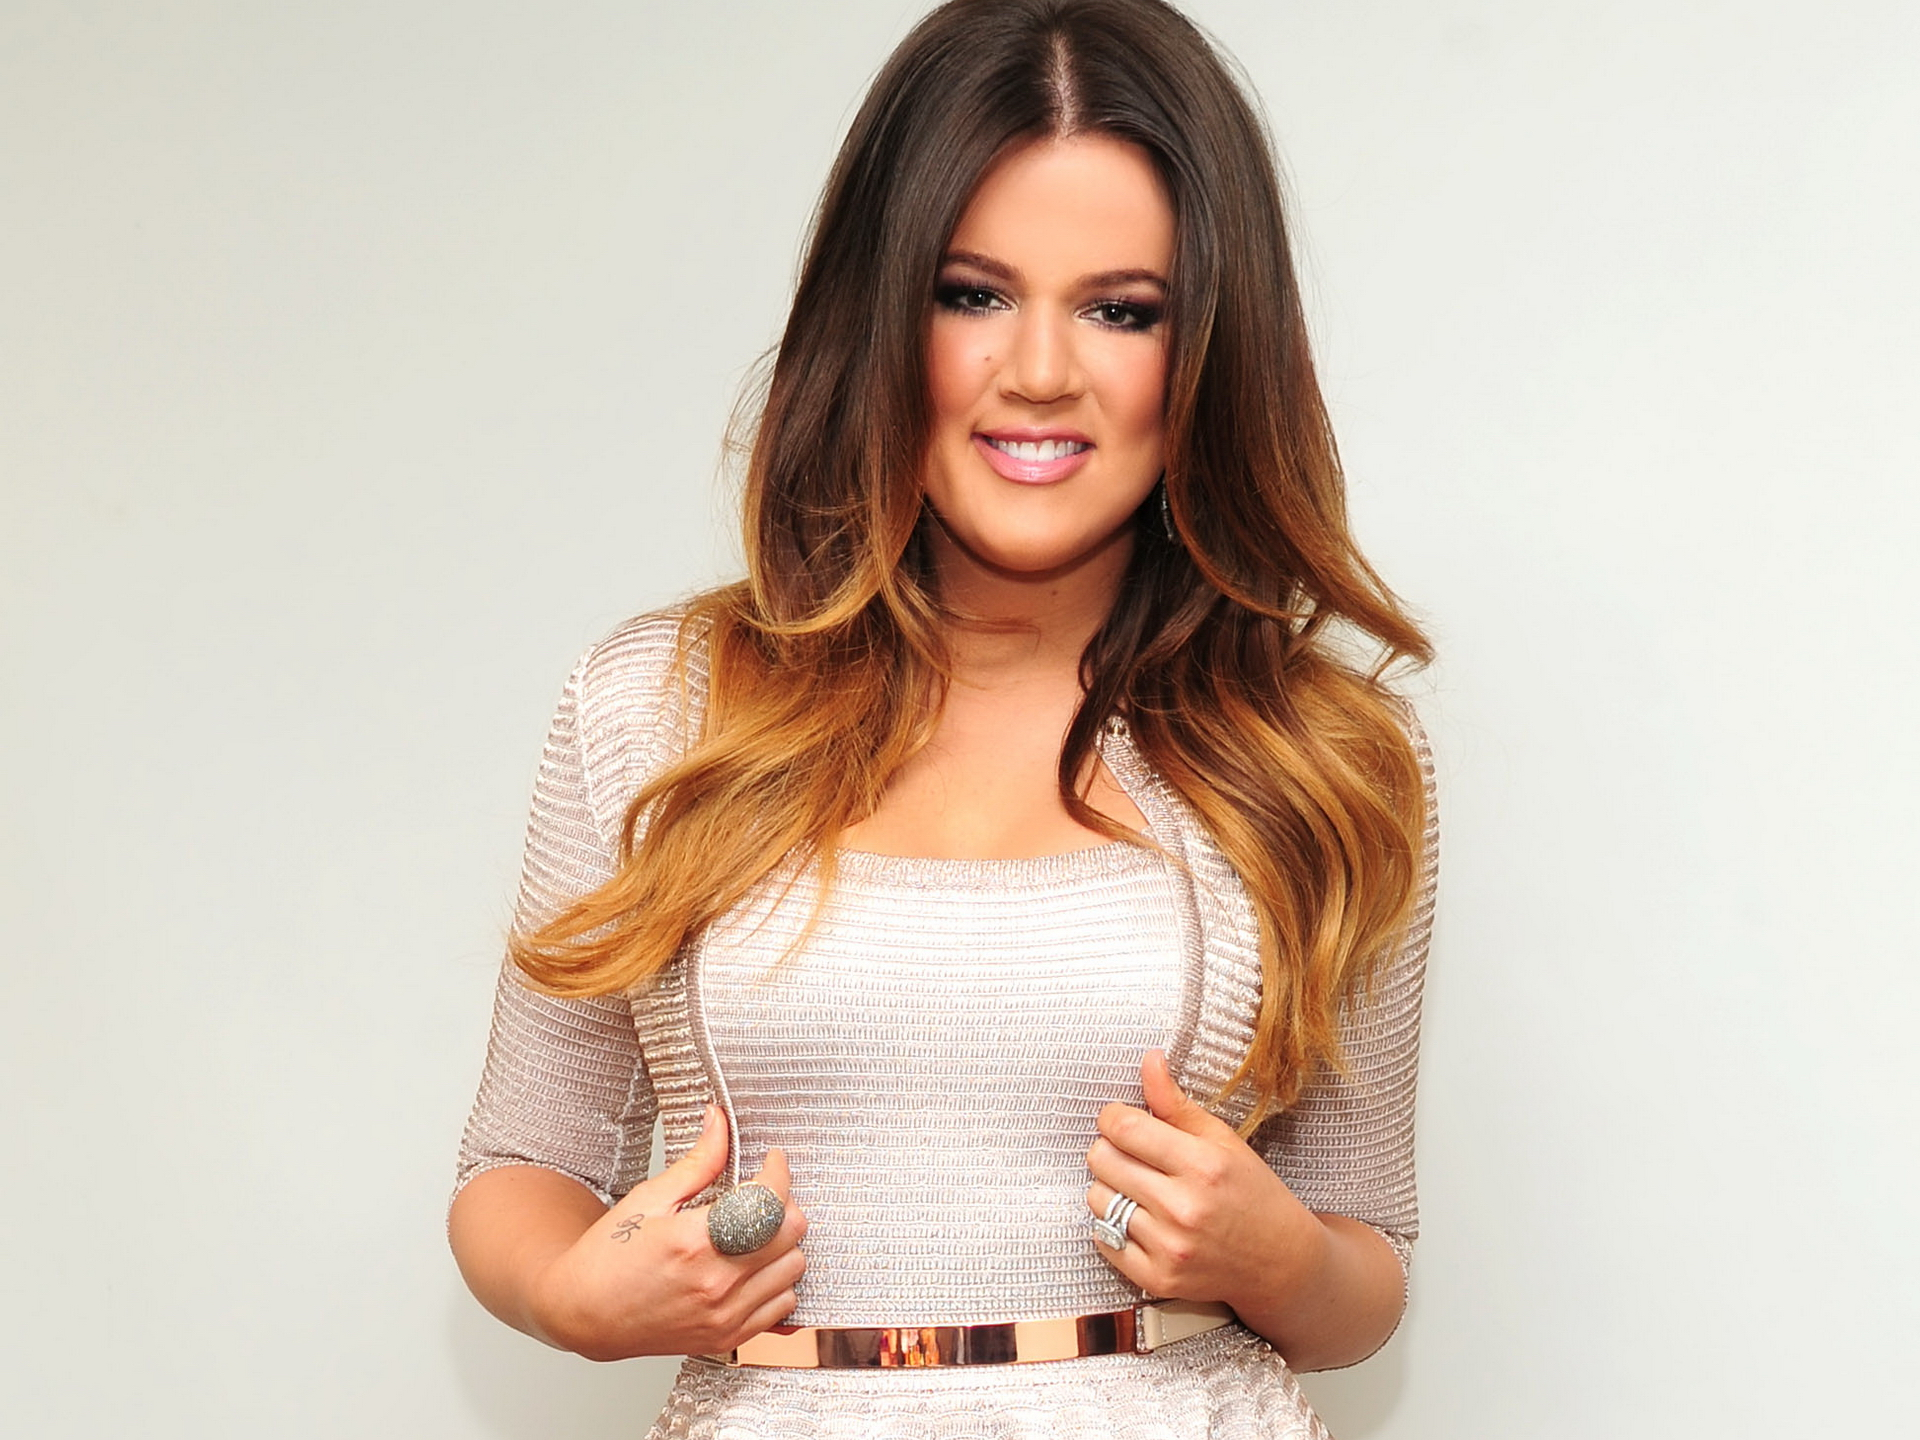 Khloe Kardashian wallpaper | 1920x1440 | #63455 Khloe Kardashian Hot Wallpapers